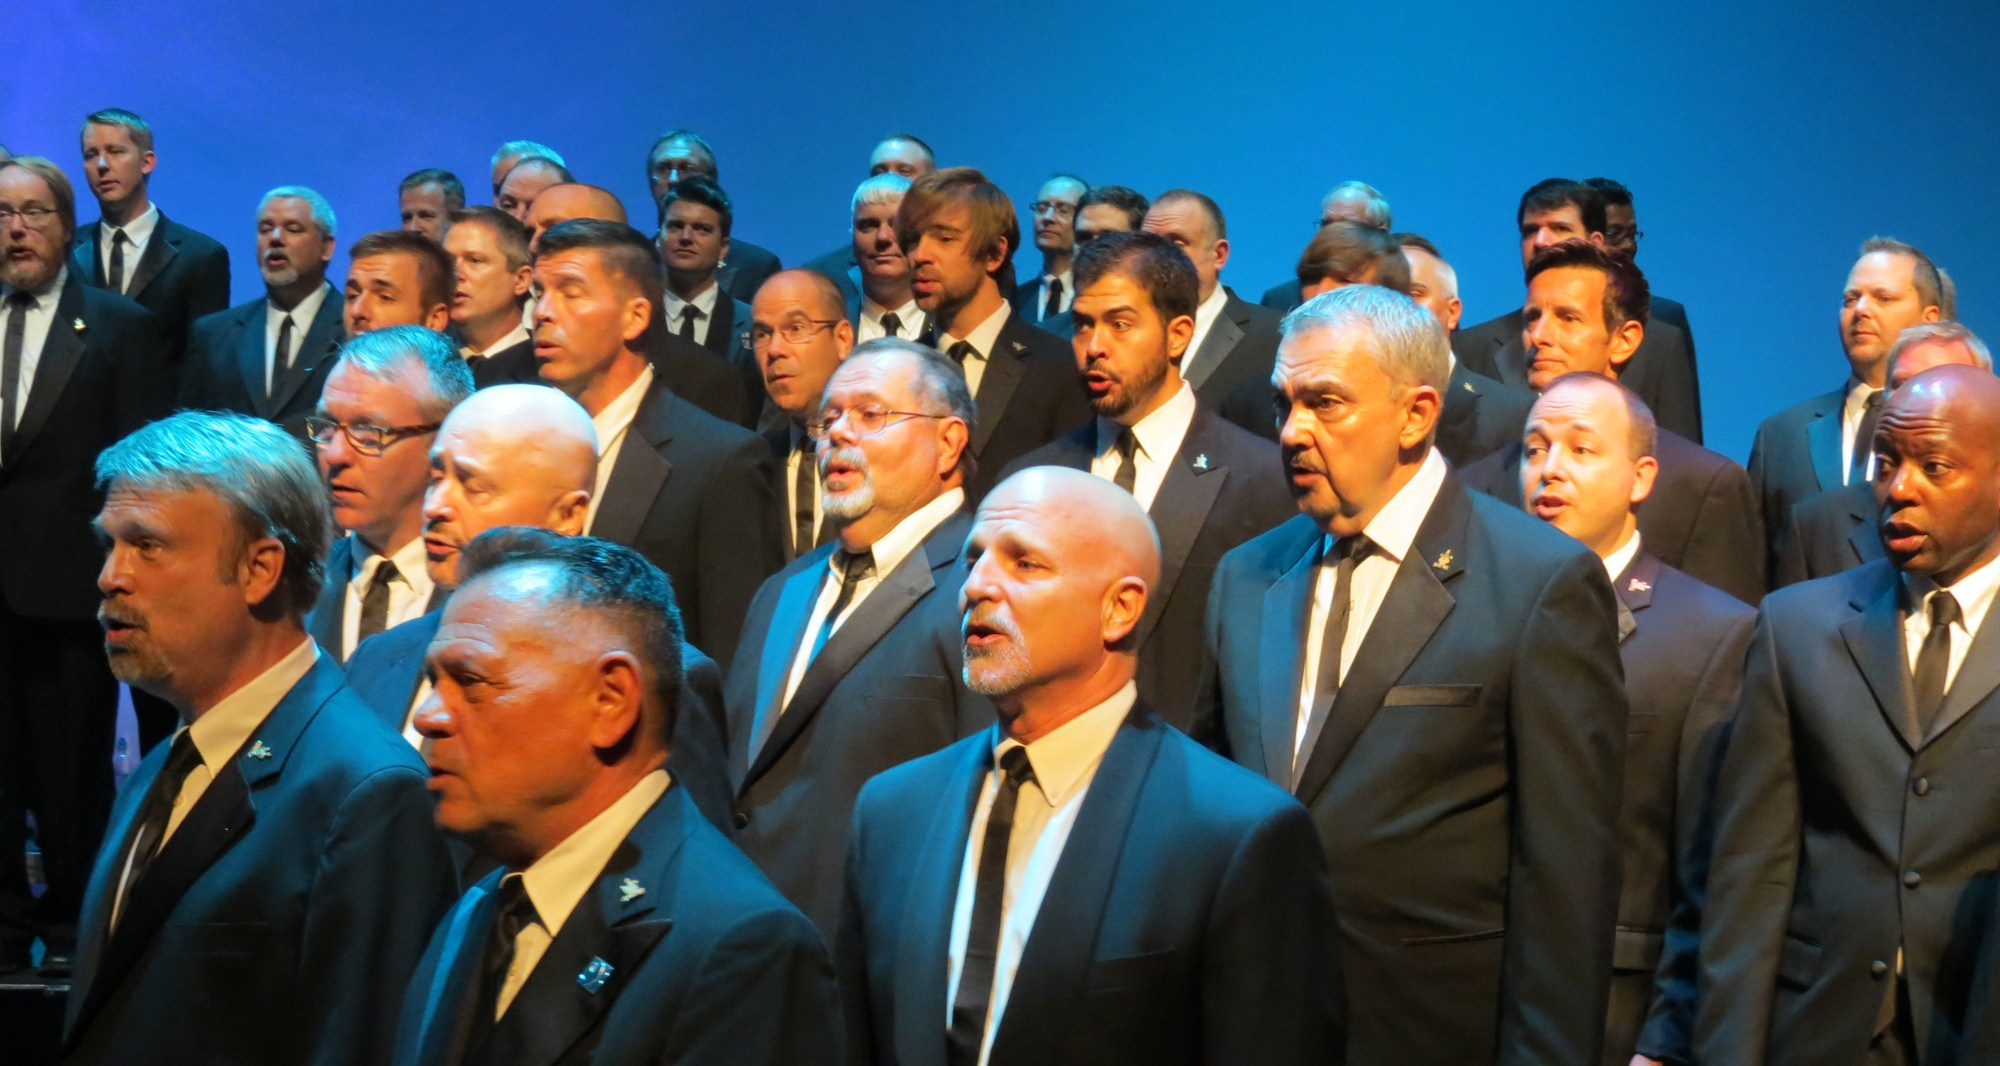 ARE WE THERE YET? Men's choir takes on new challenges in a rapidly changing world